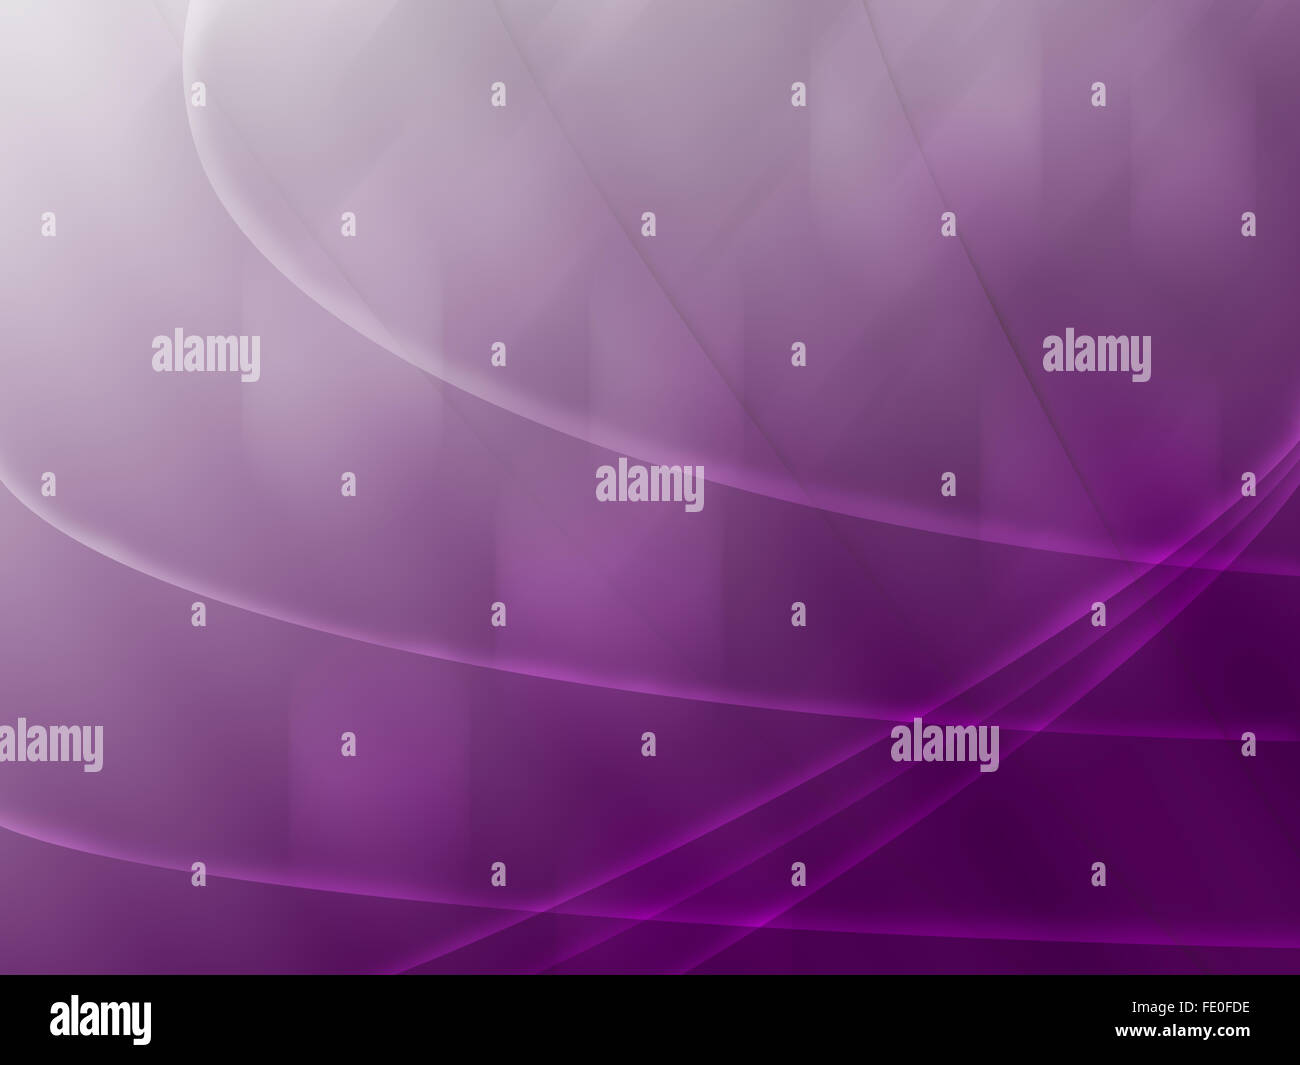 Abstract background, wallpaper, pattern lines purple. - Stock Image